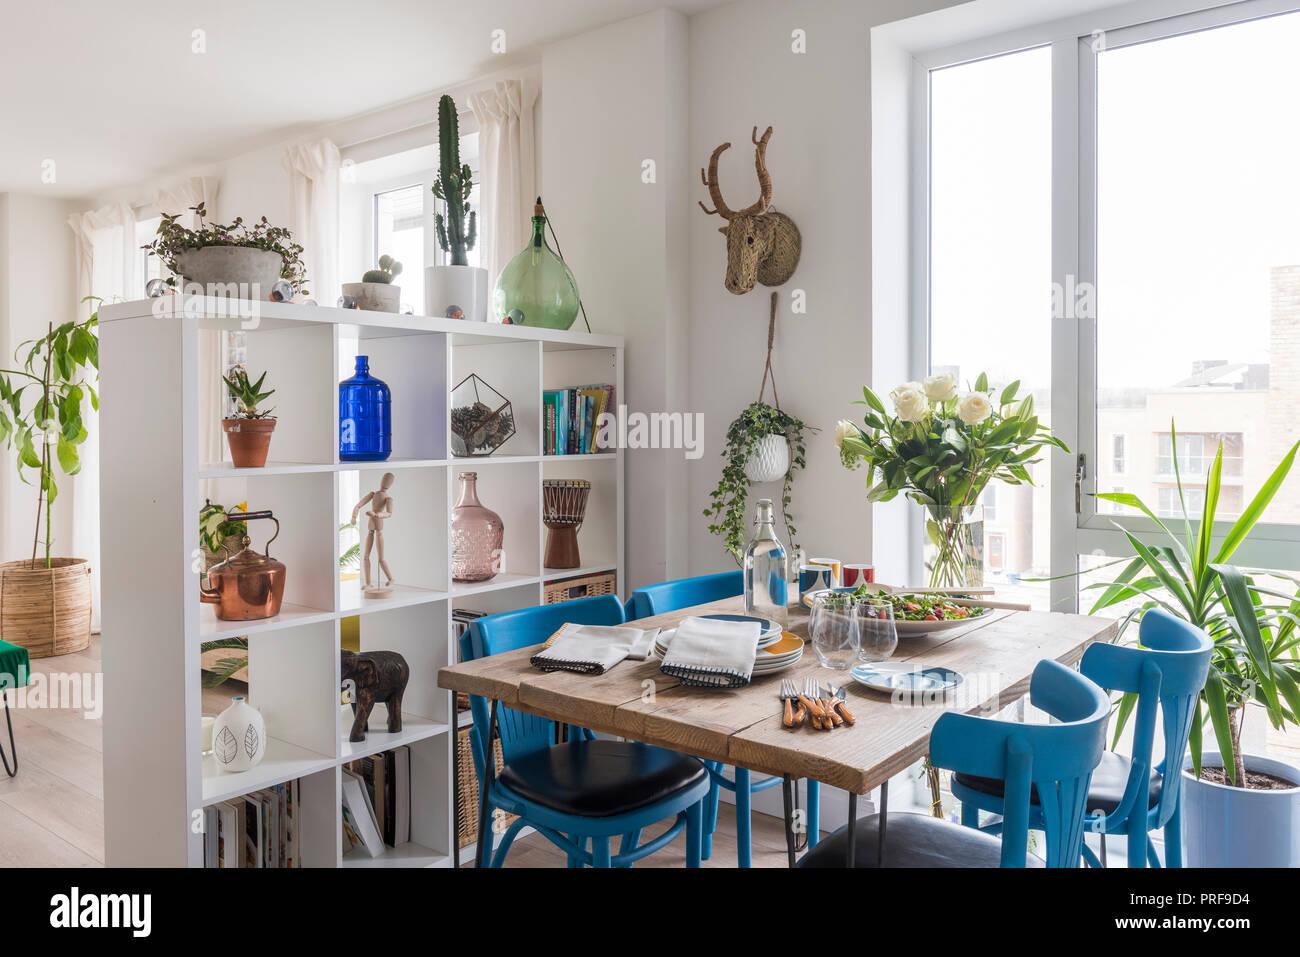 Blue painted chairs at scaffold board dining table with shelving as room divider - Stock Image